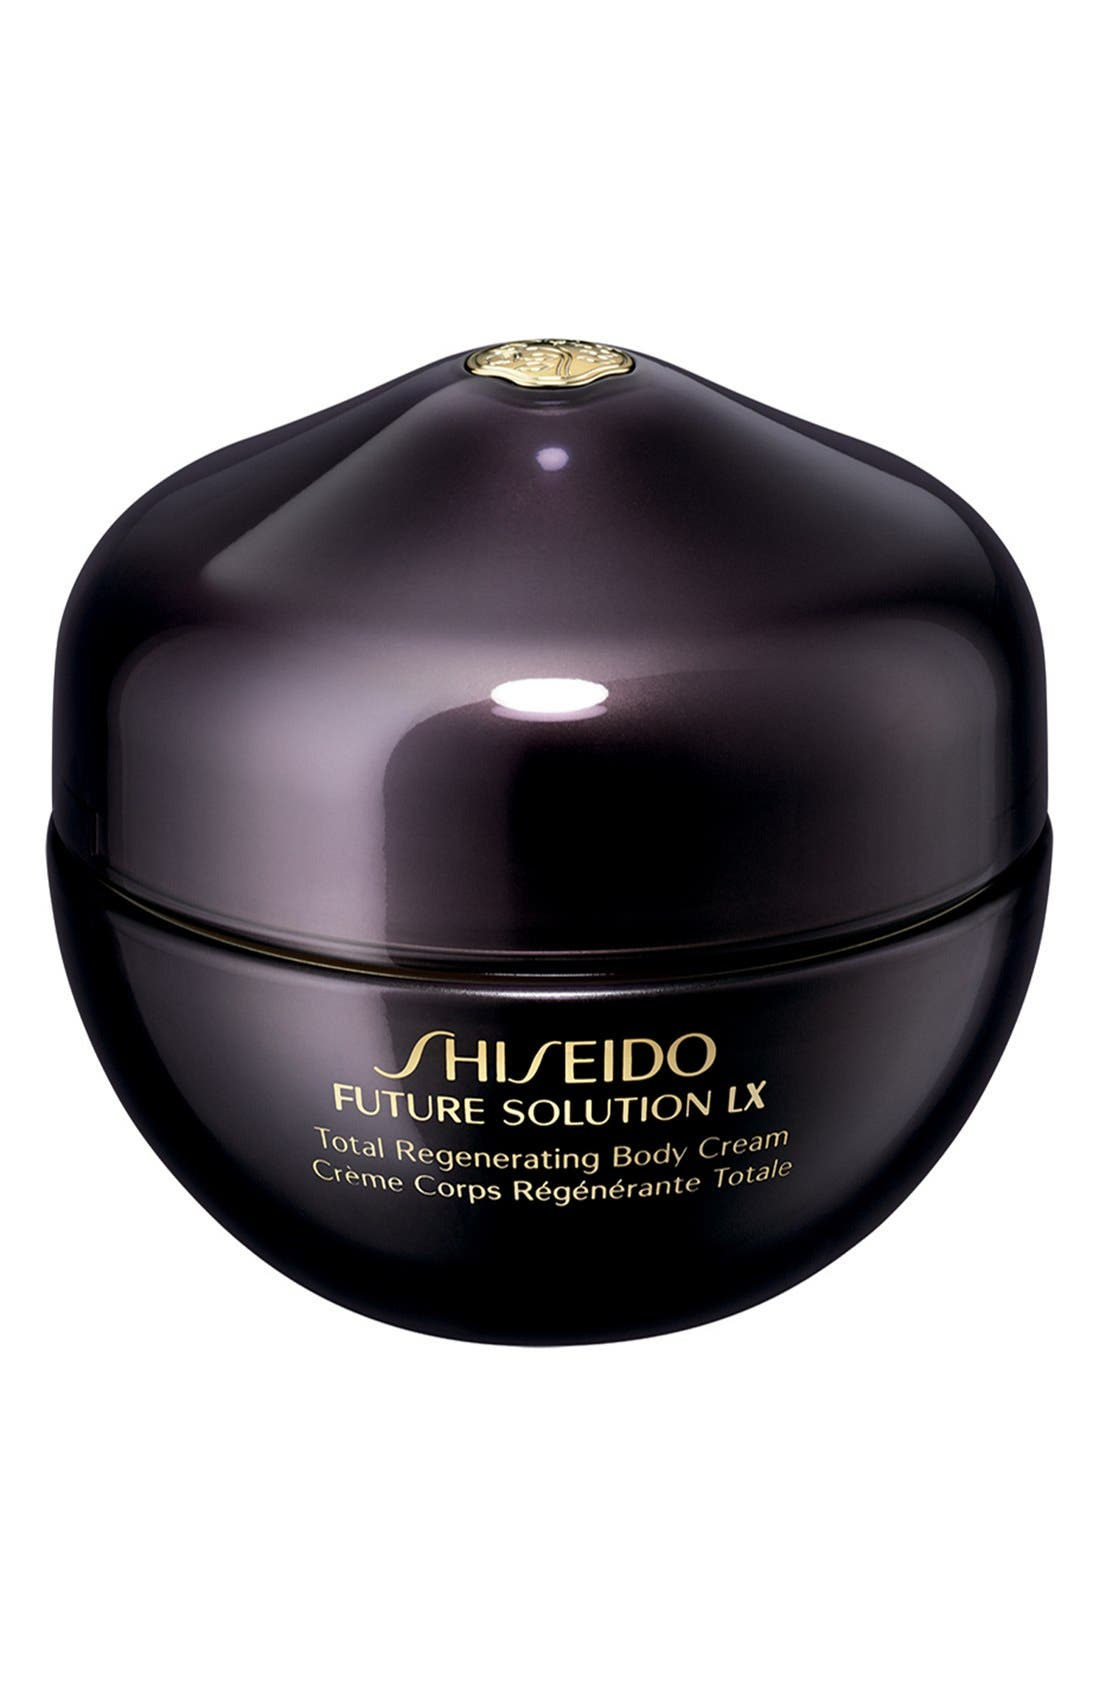 Shiseido 'Future Solution LX' Total Regenerating Body Cream